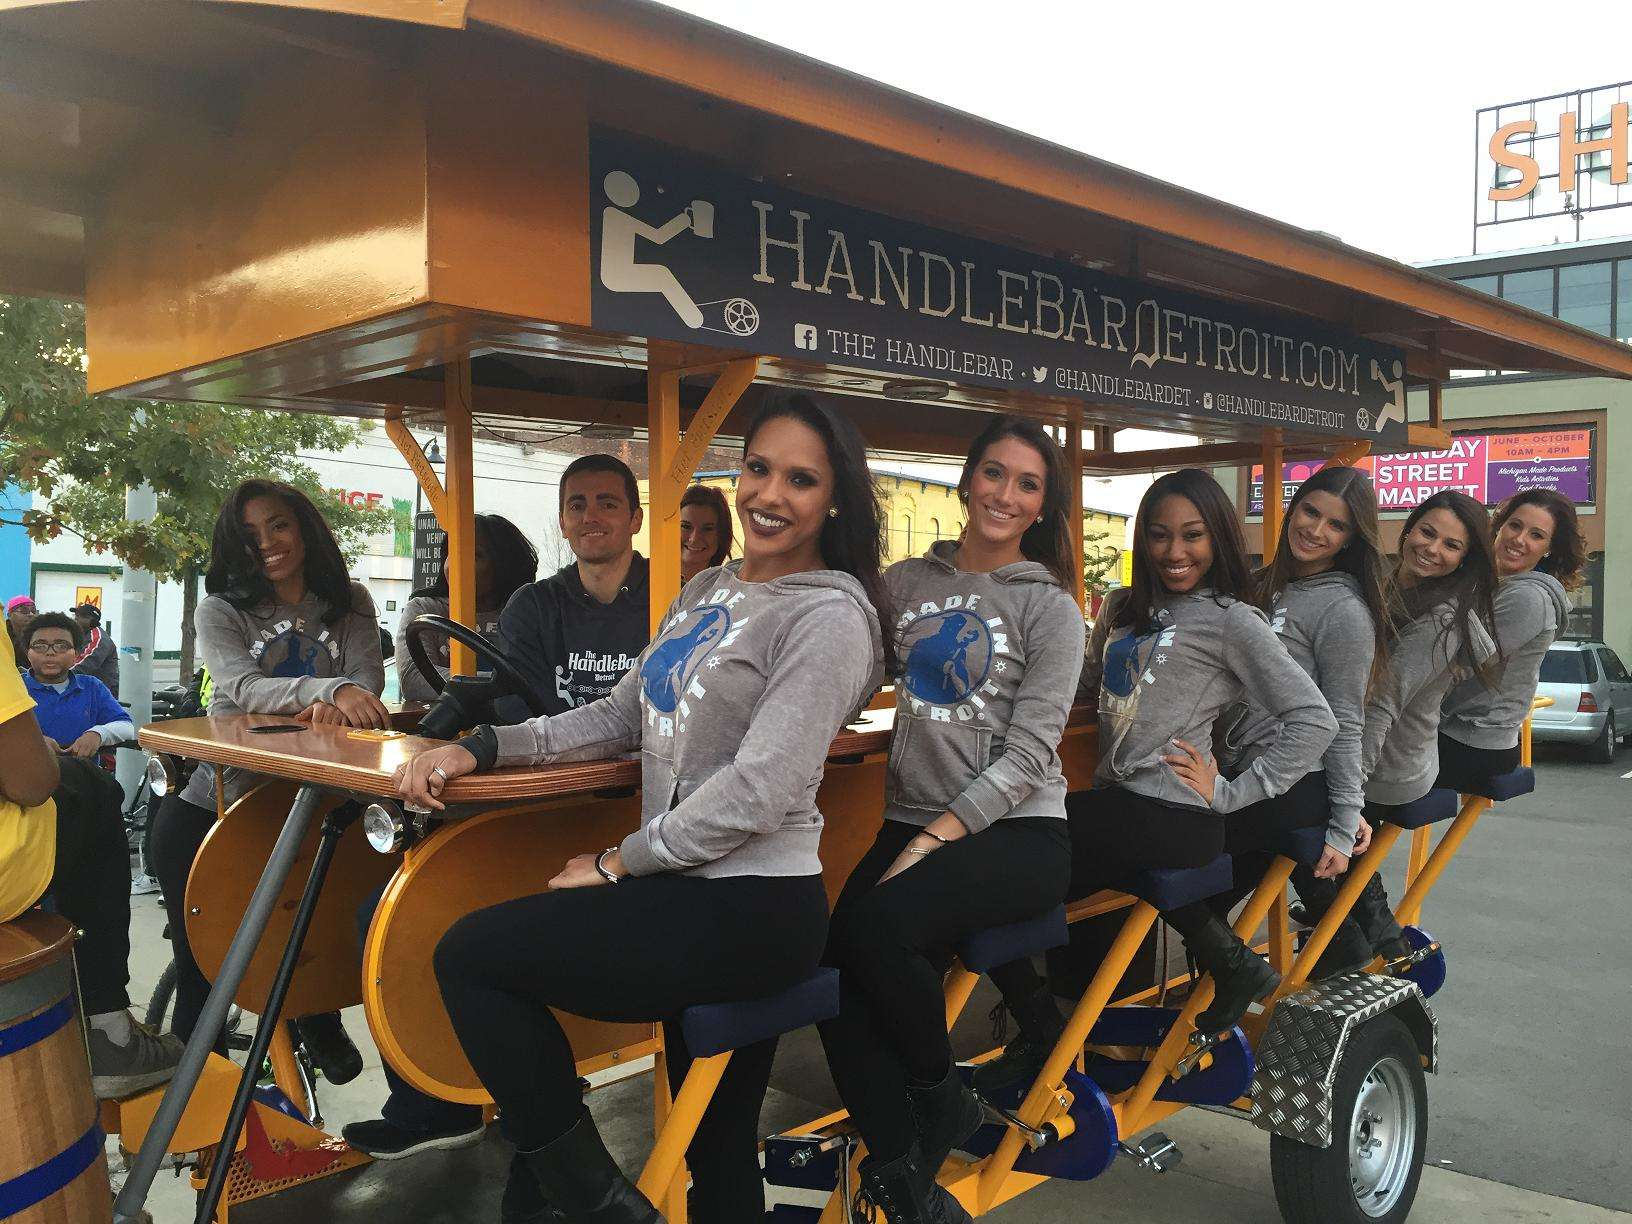 The Handlebar Detroit S Pedalpub It S A 16 Passenger